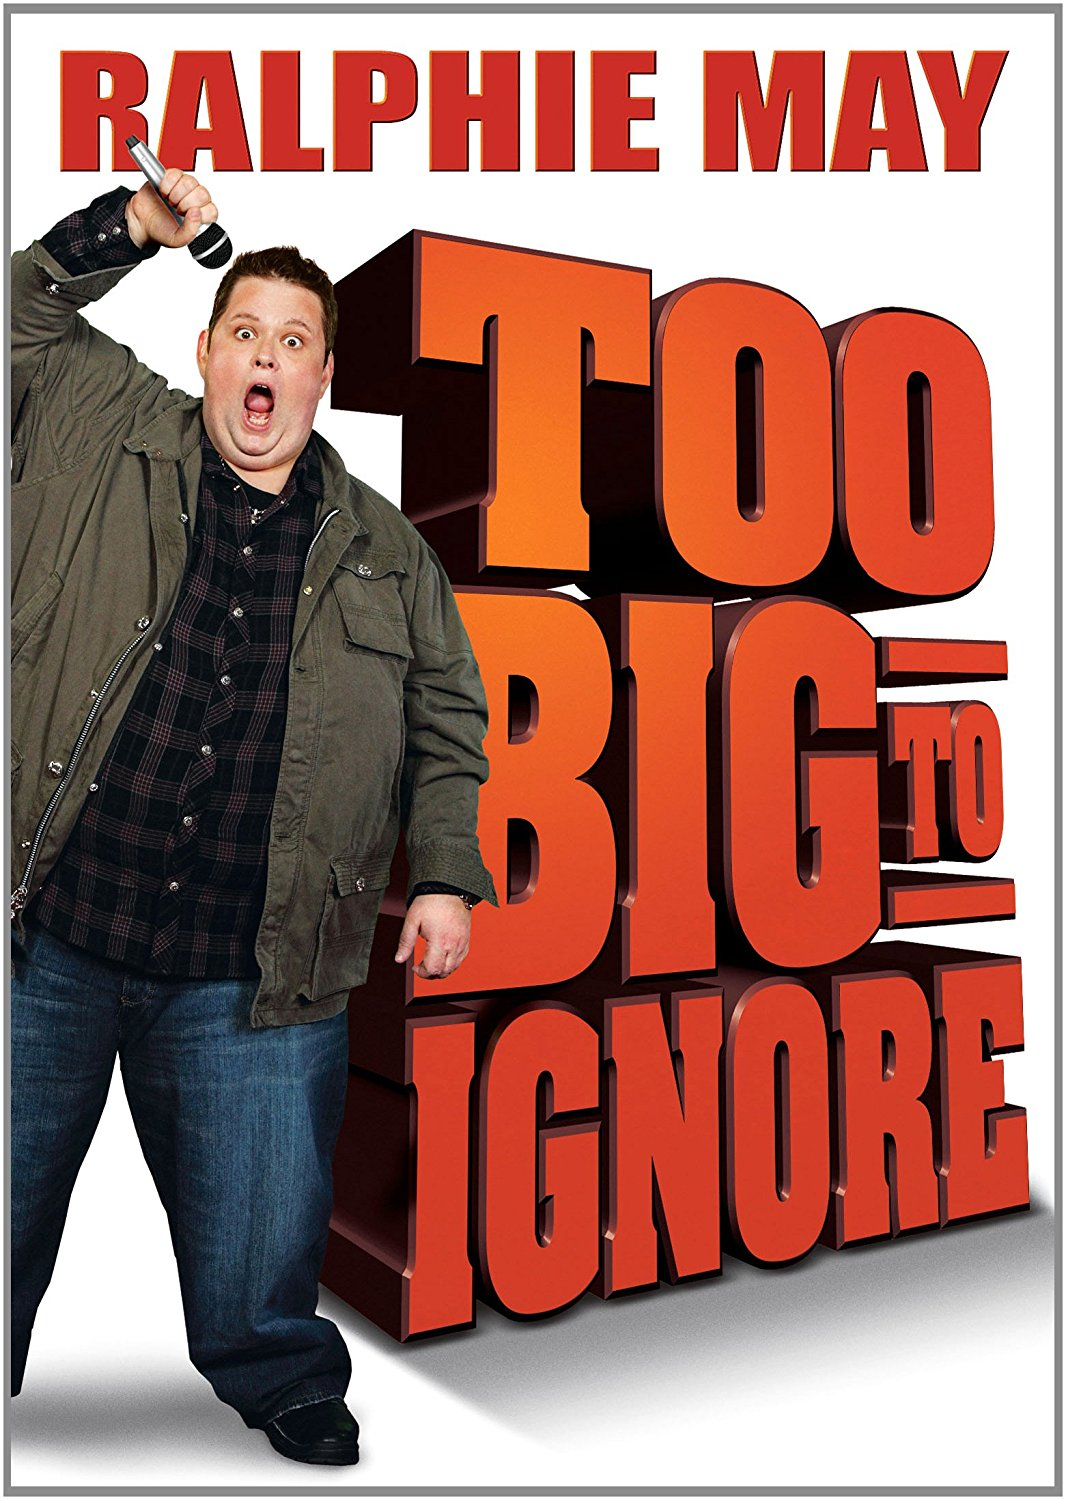 Comic Ralphie May Dead At 45